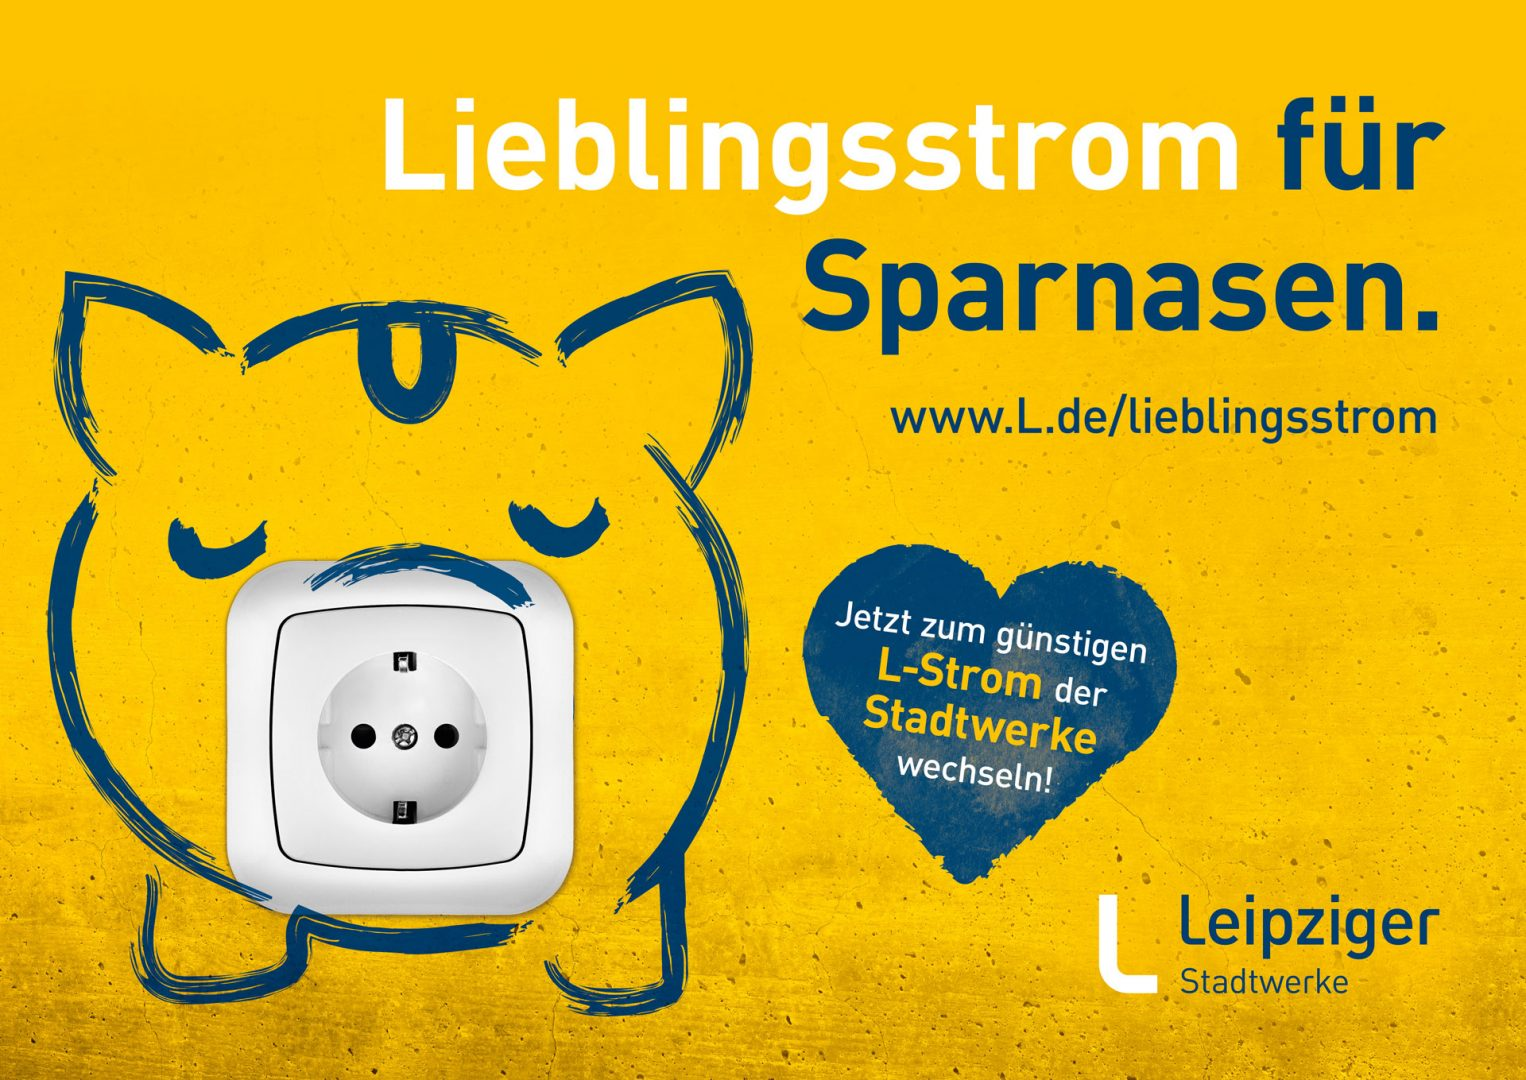 lsw_content_lieblingsstrom_02